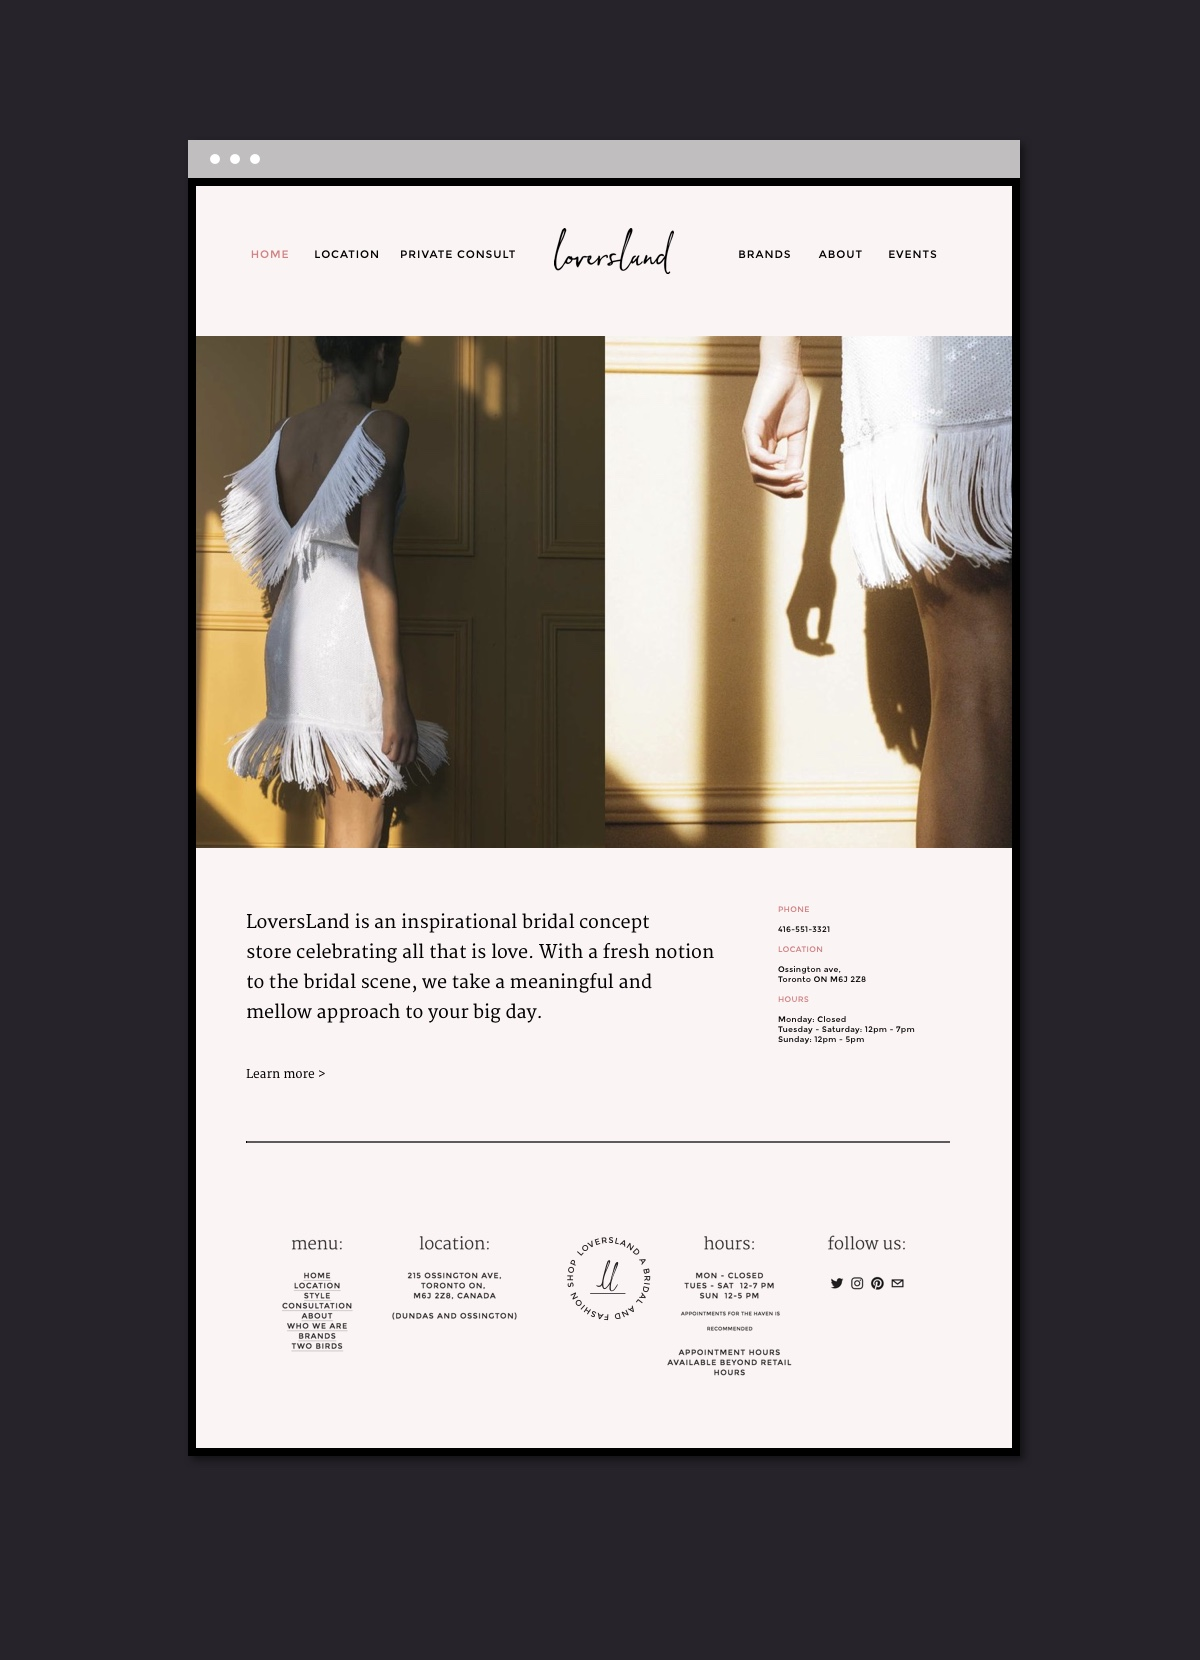 LoversLand_Toronto_Bridal_Store_Website_Design.jpg